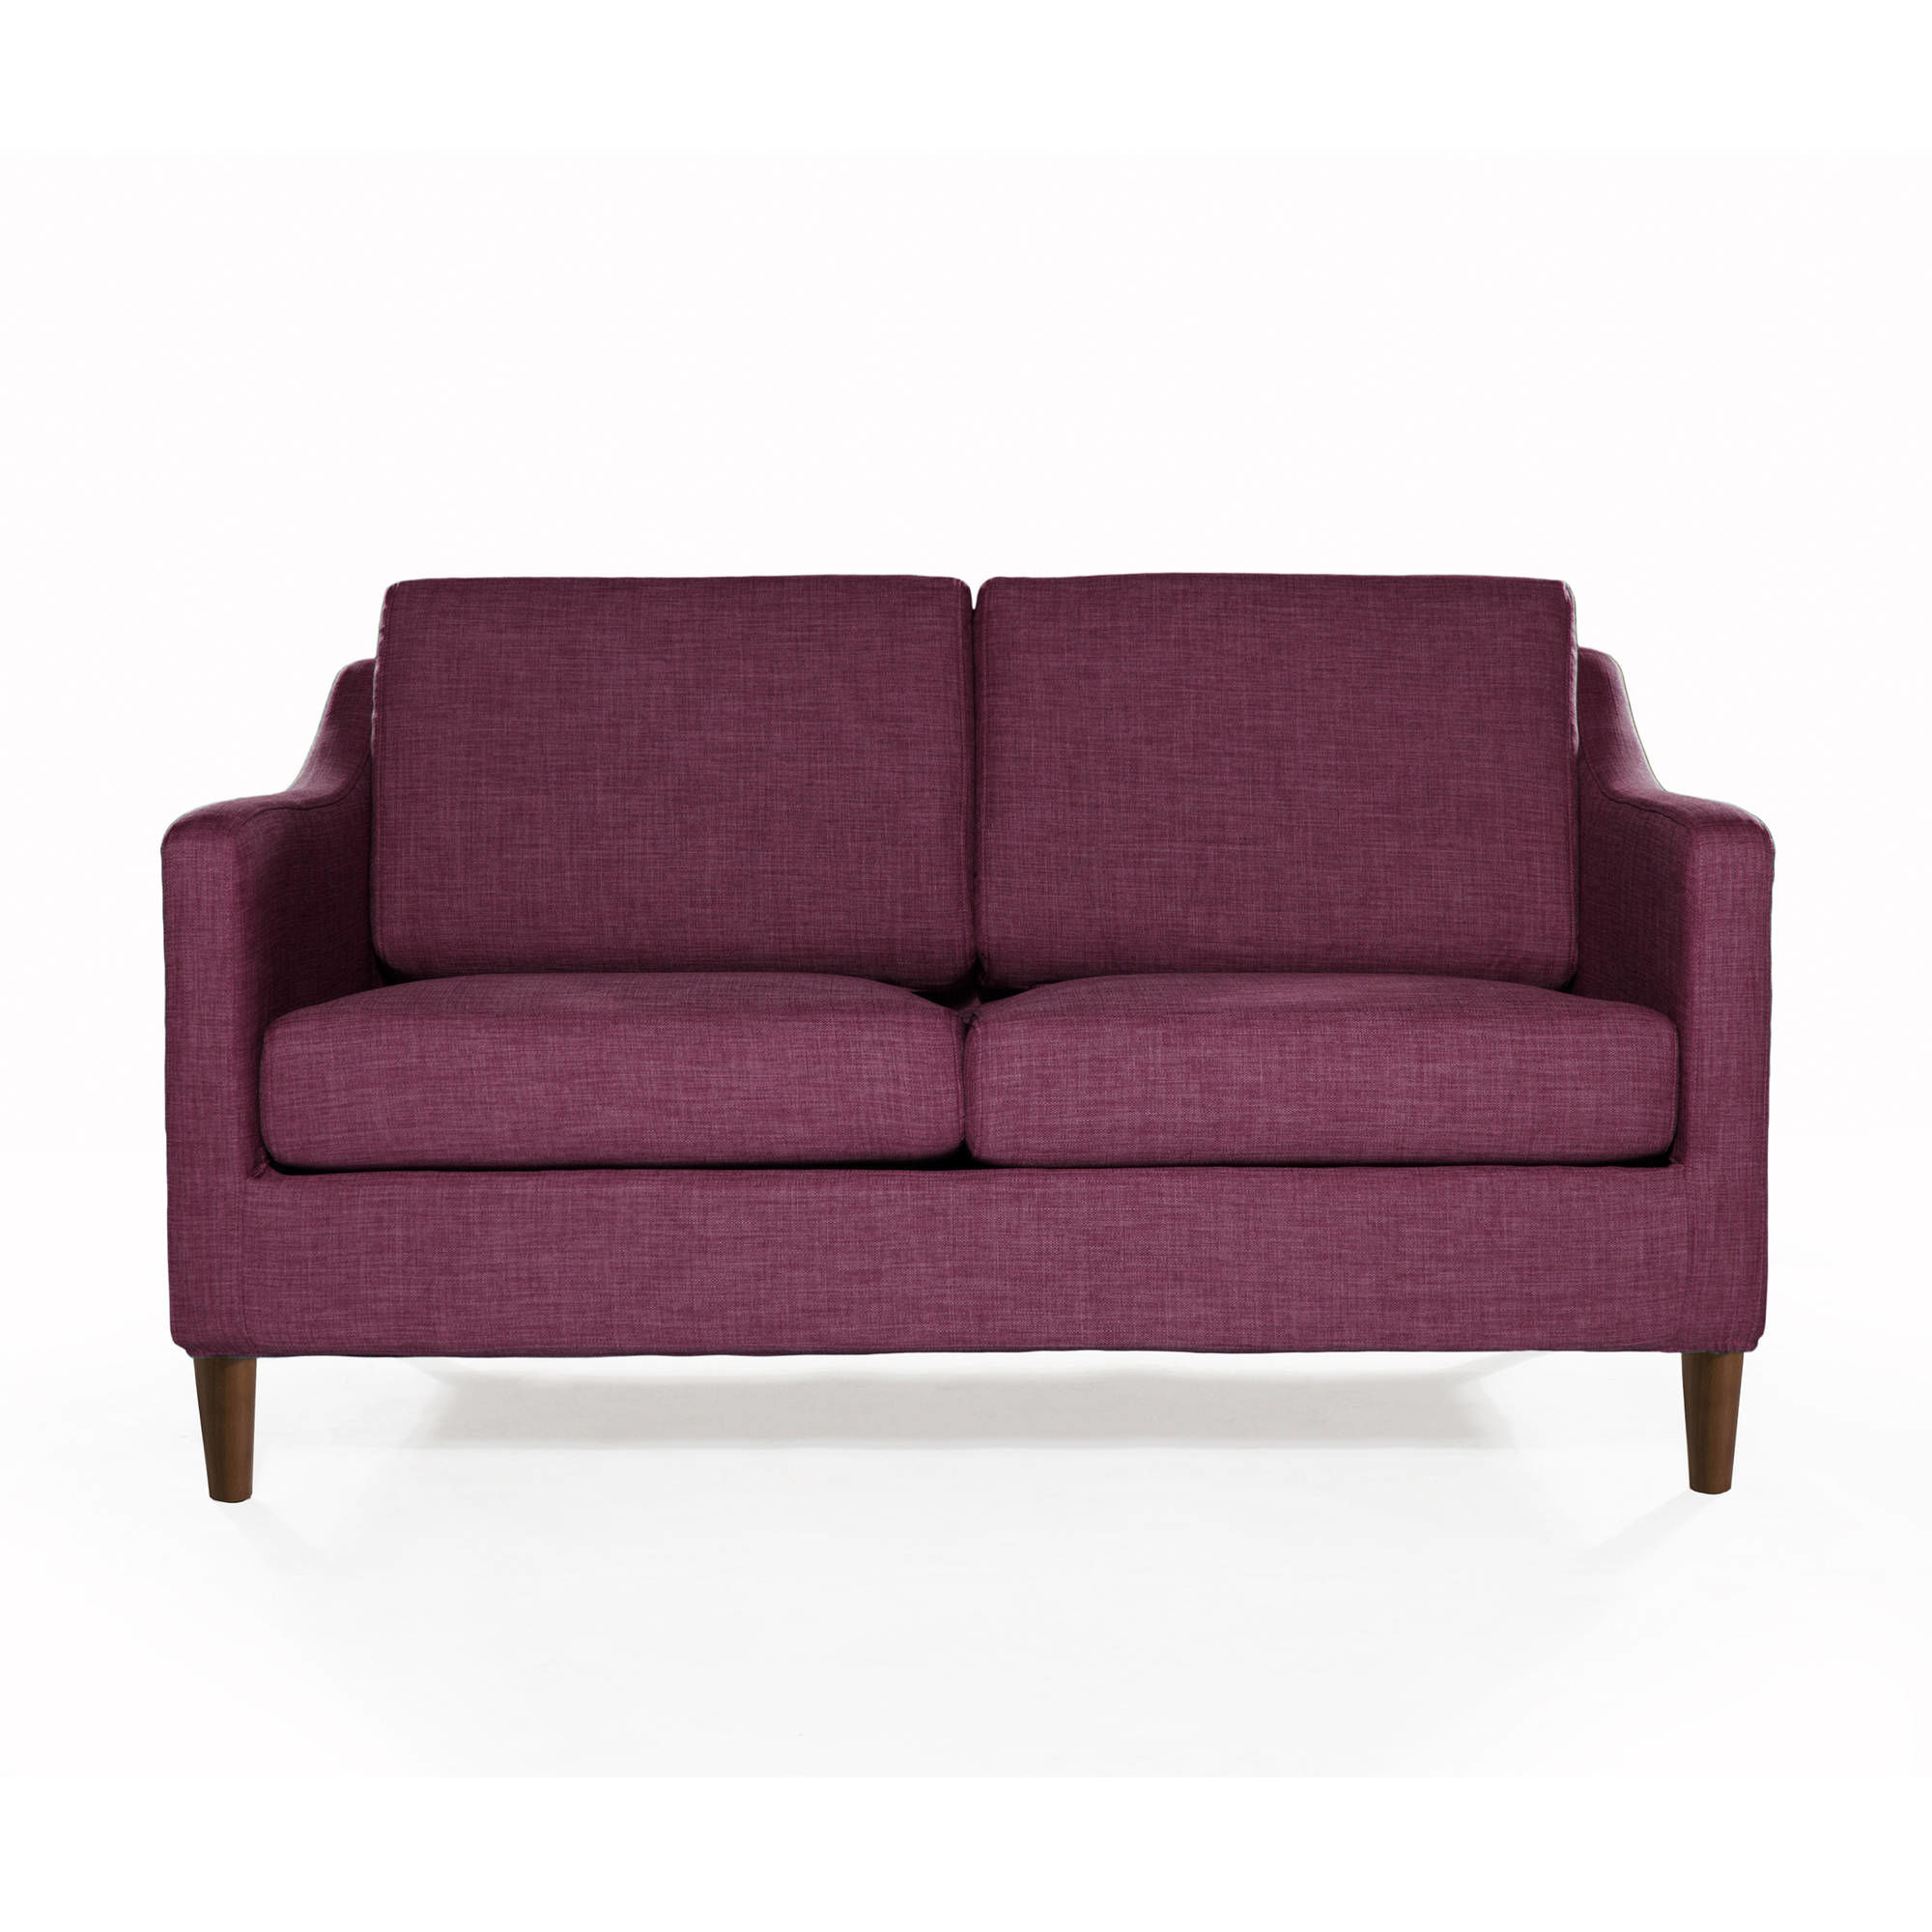 unique sofa mart sectional gallery-Awesome sofa Mart Sectional Photo